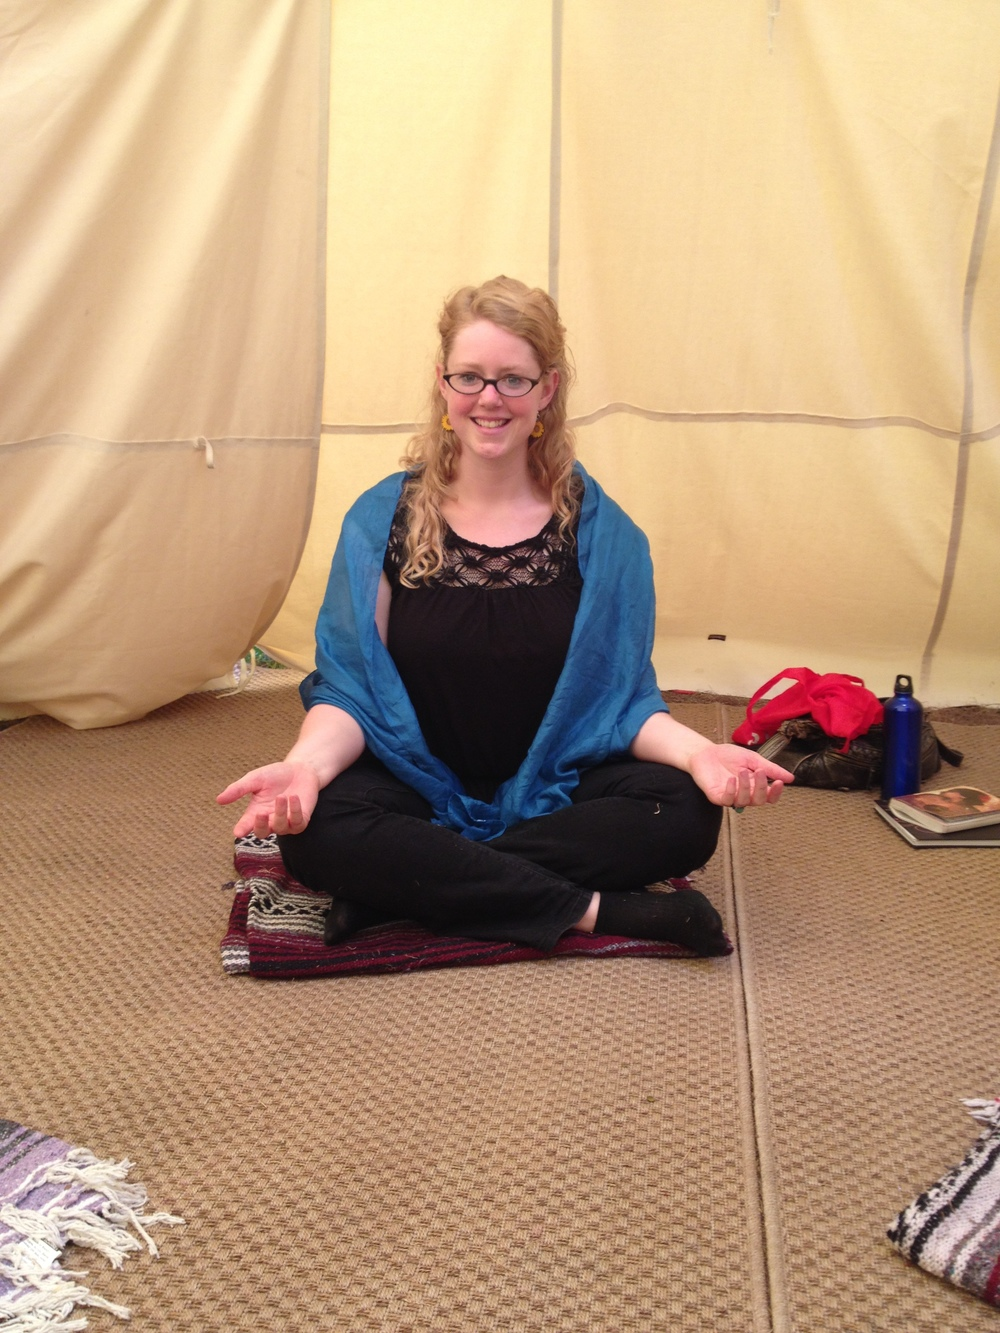 Channeling my inner goddess at my moon circle!